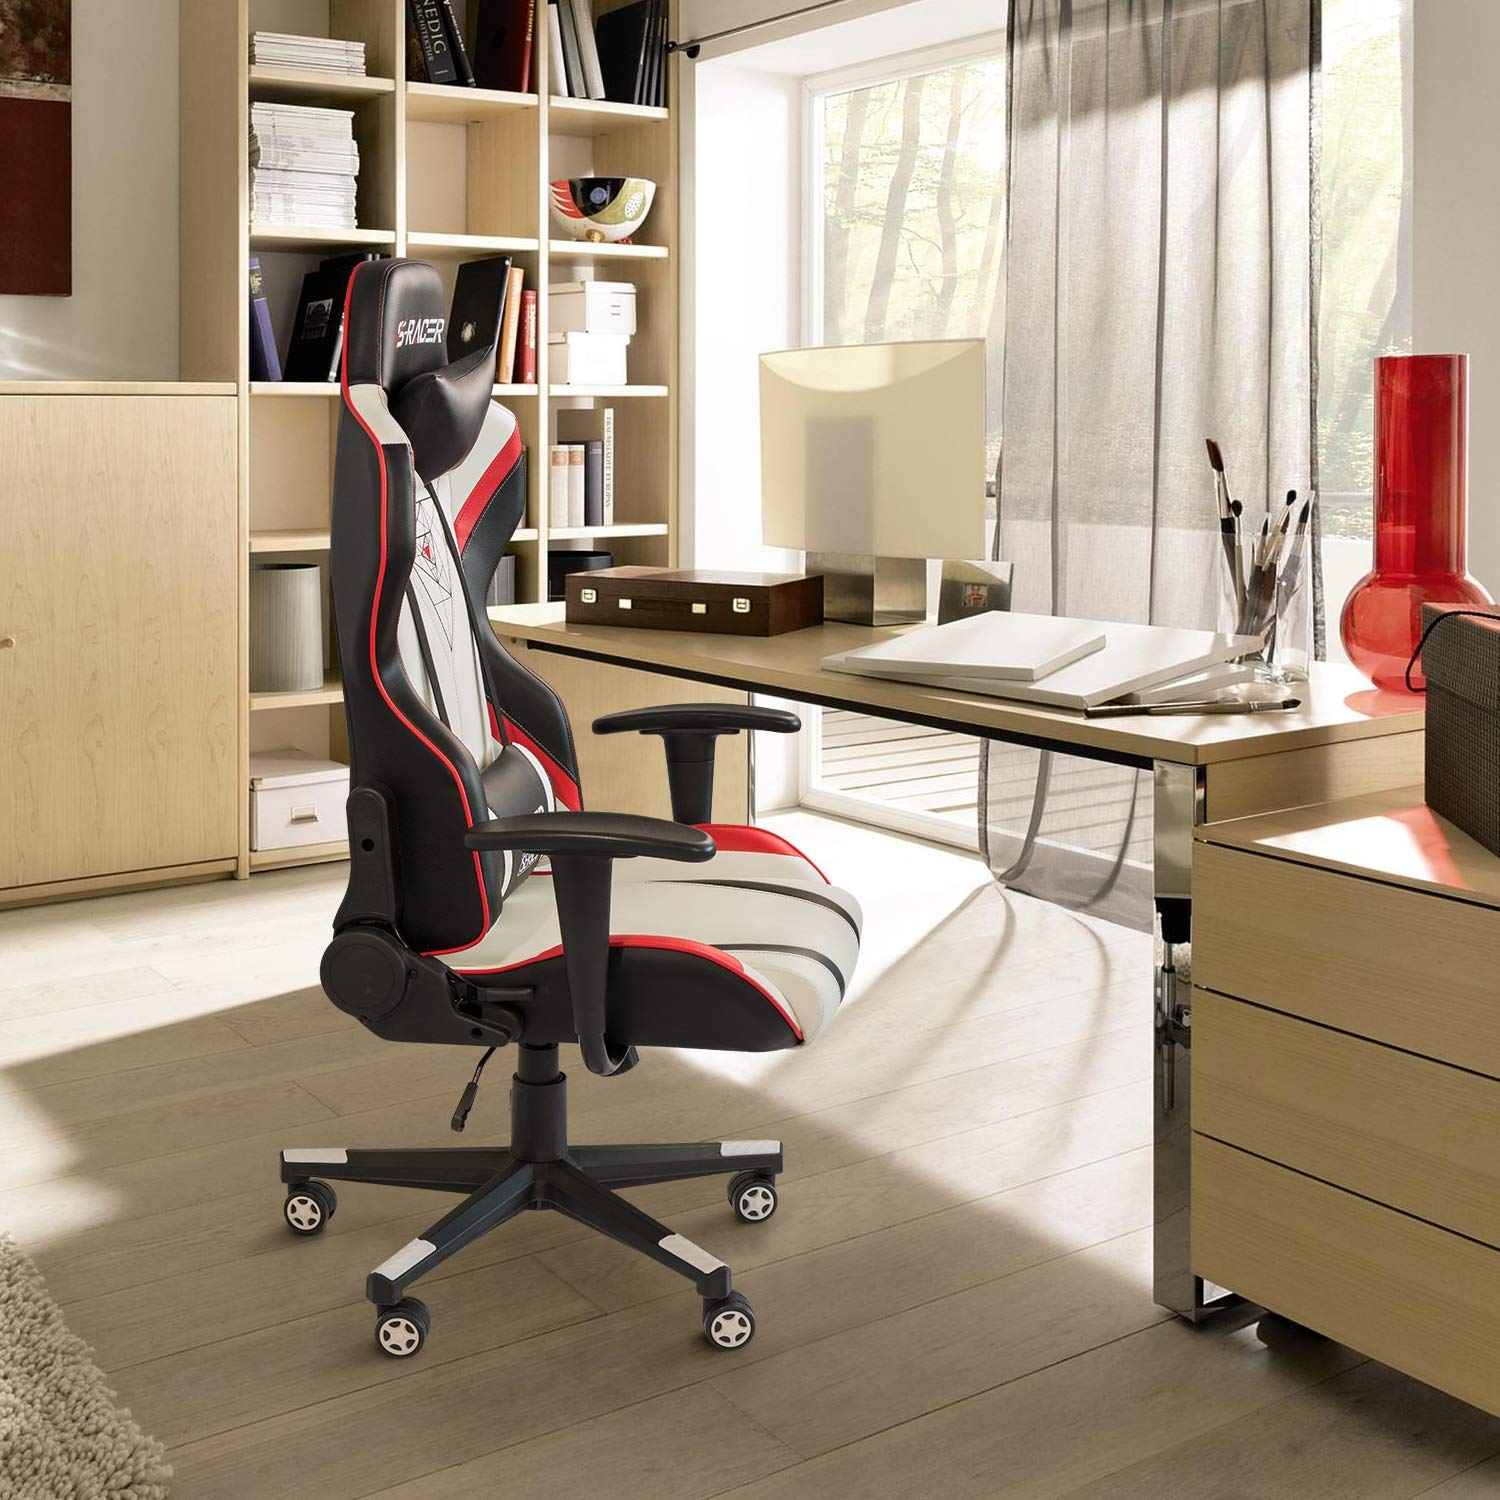 Homall Gaming Chair Racing Office Chair High Back PU Leather Computer Desk Chair Executive and Ergonomic Swivel Chair with Headrest and Lumbar Support Black//White